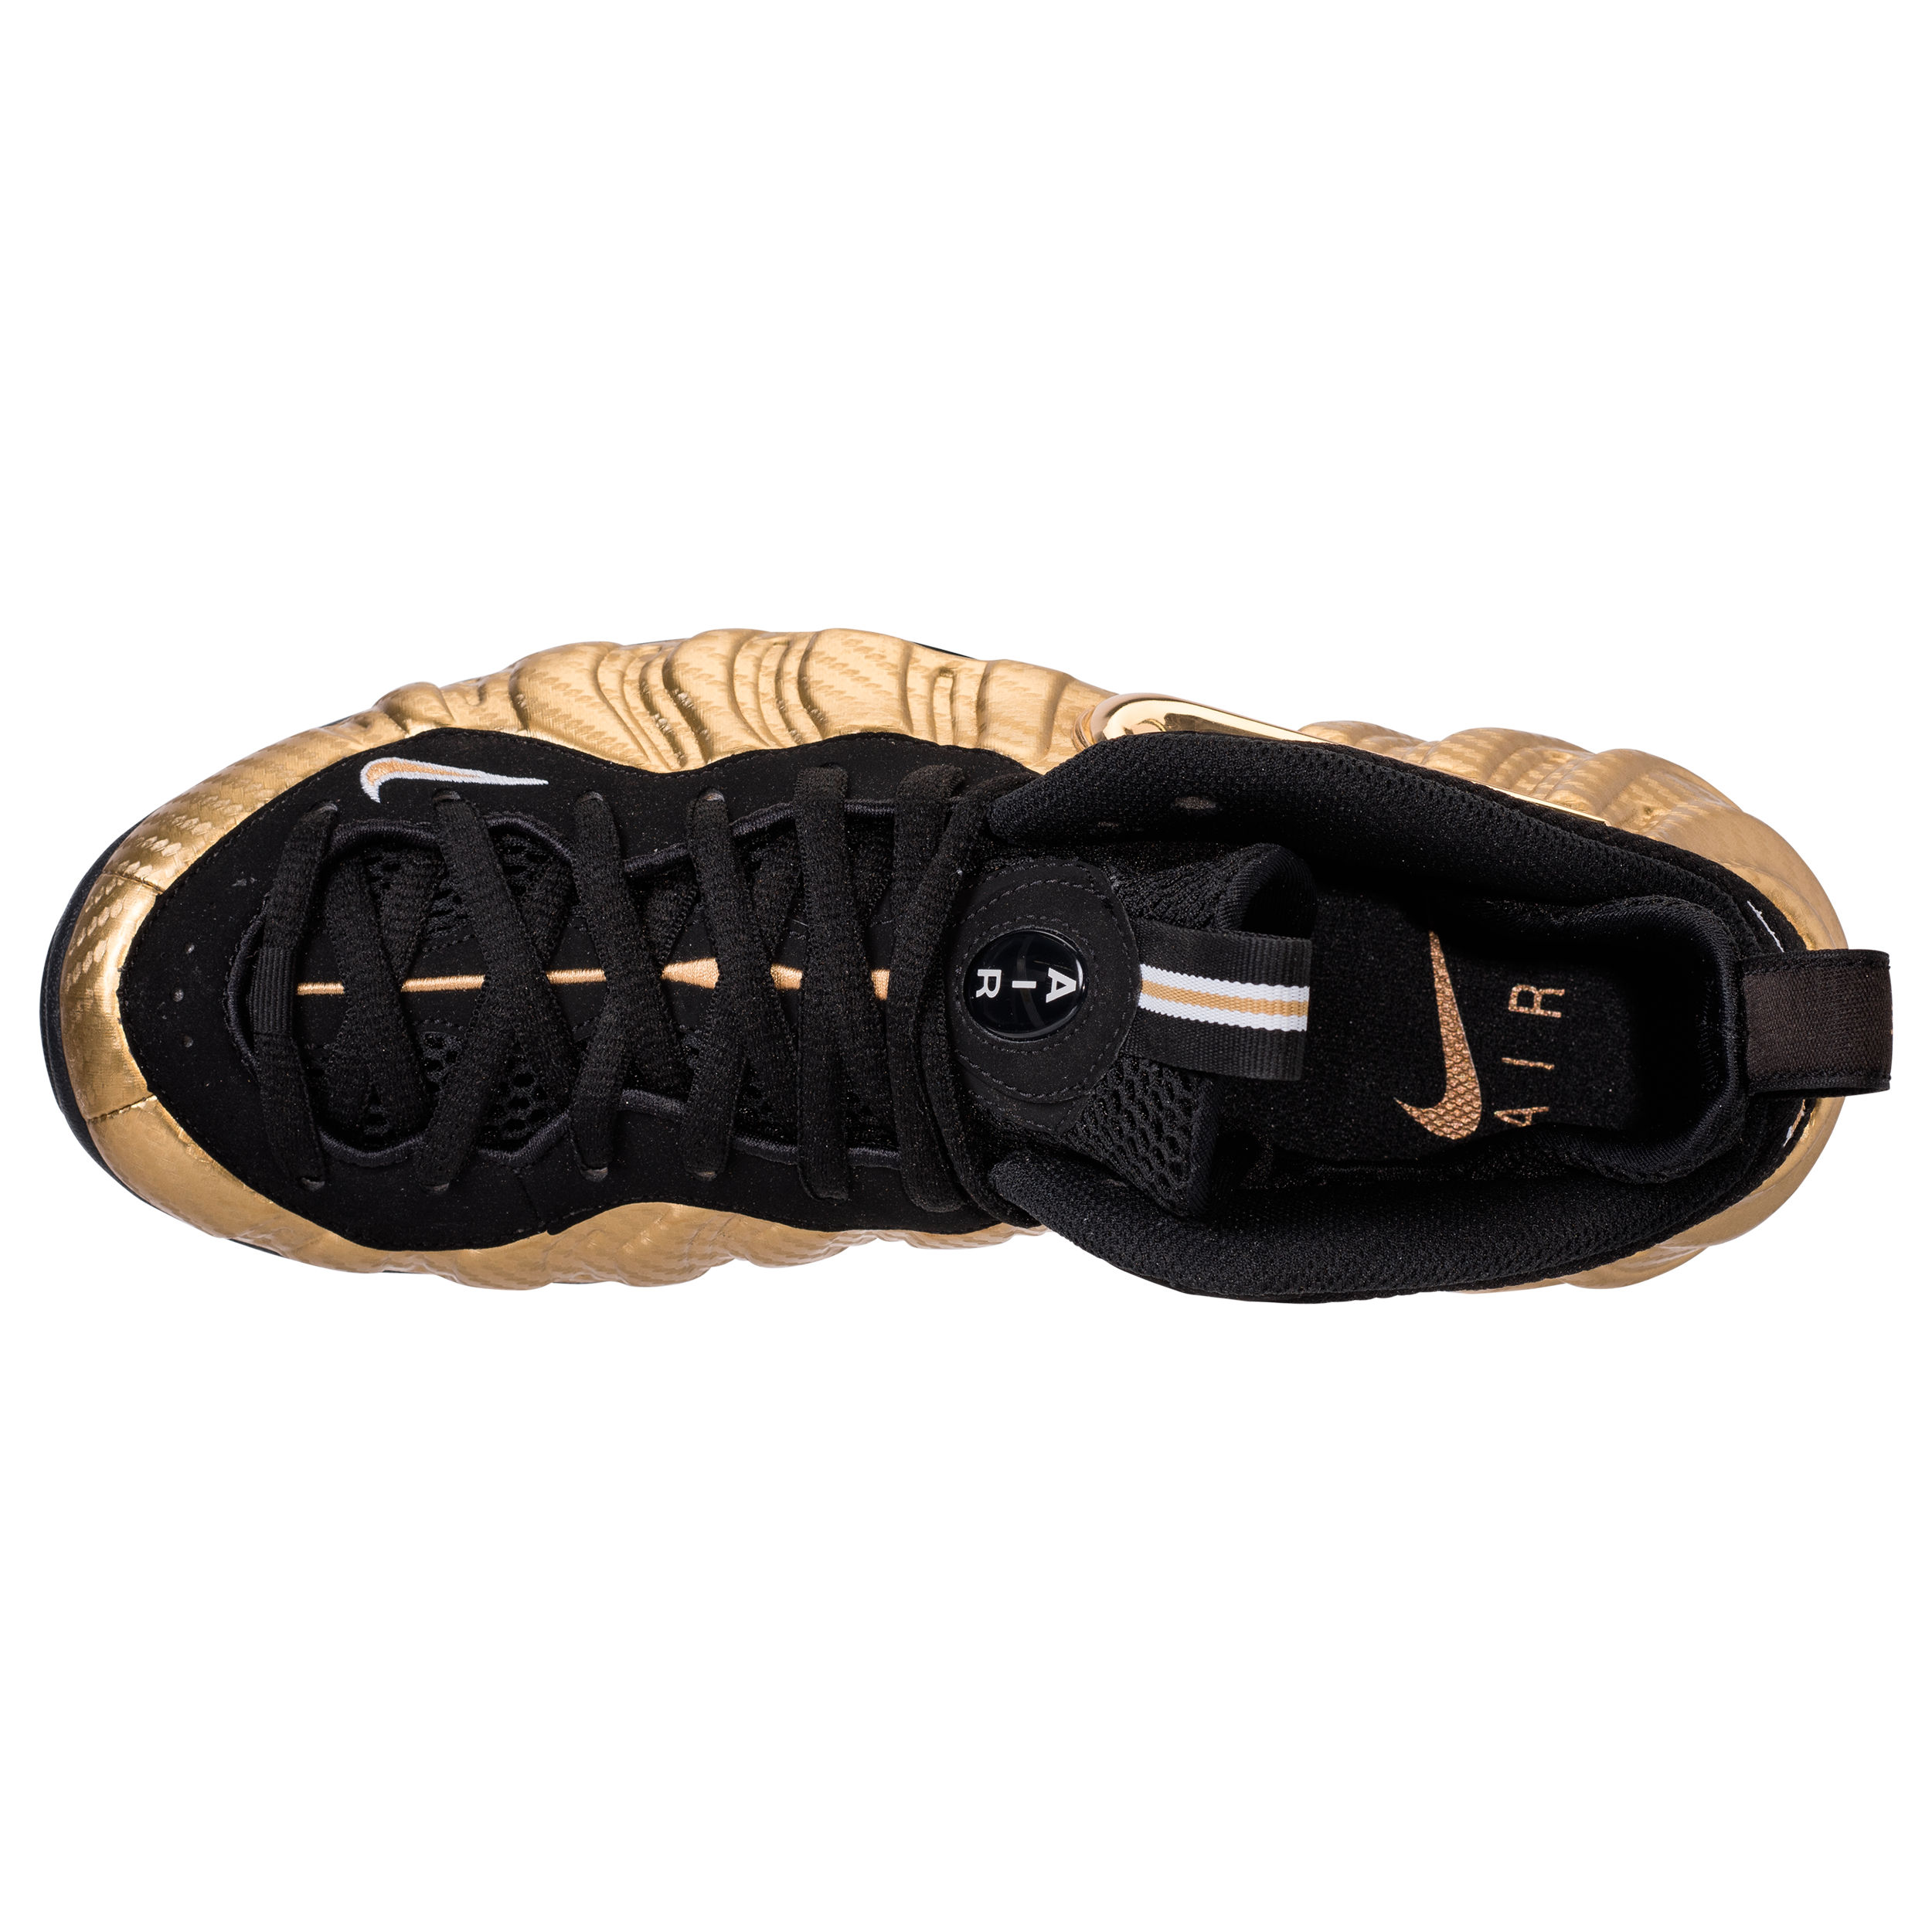 c6fa7dc7f52 nike air foamposite pro metallic gold 6 - WearTesters